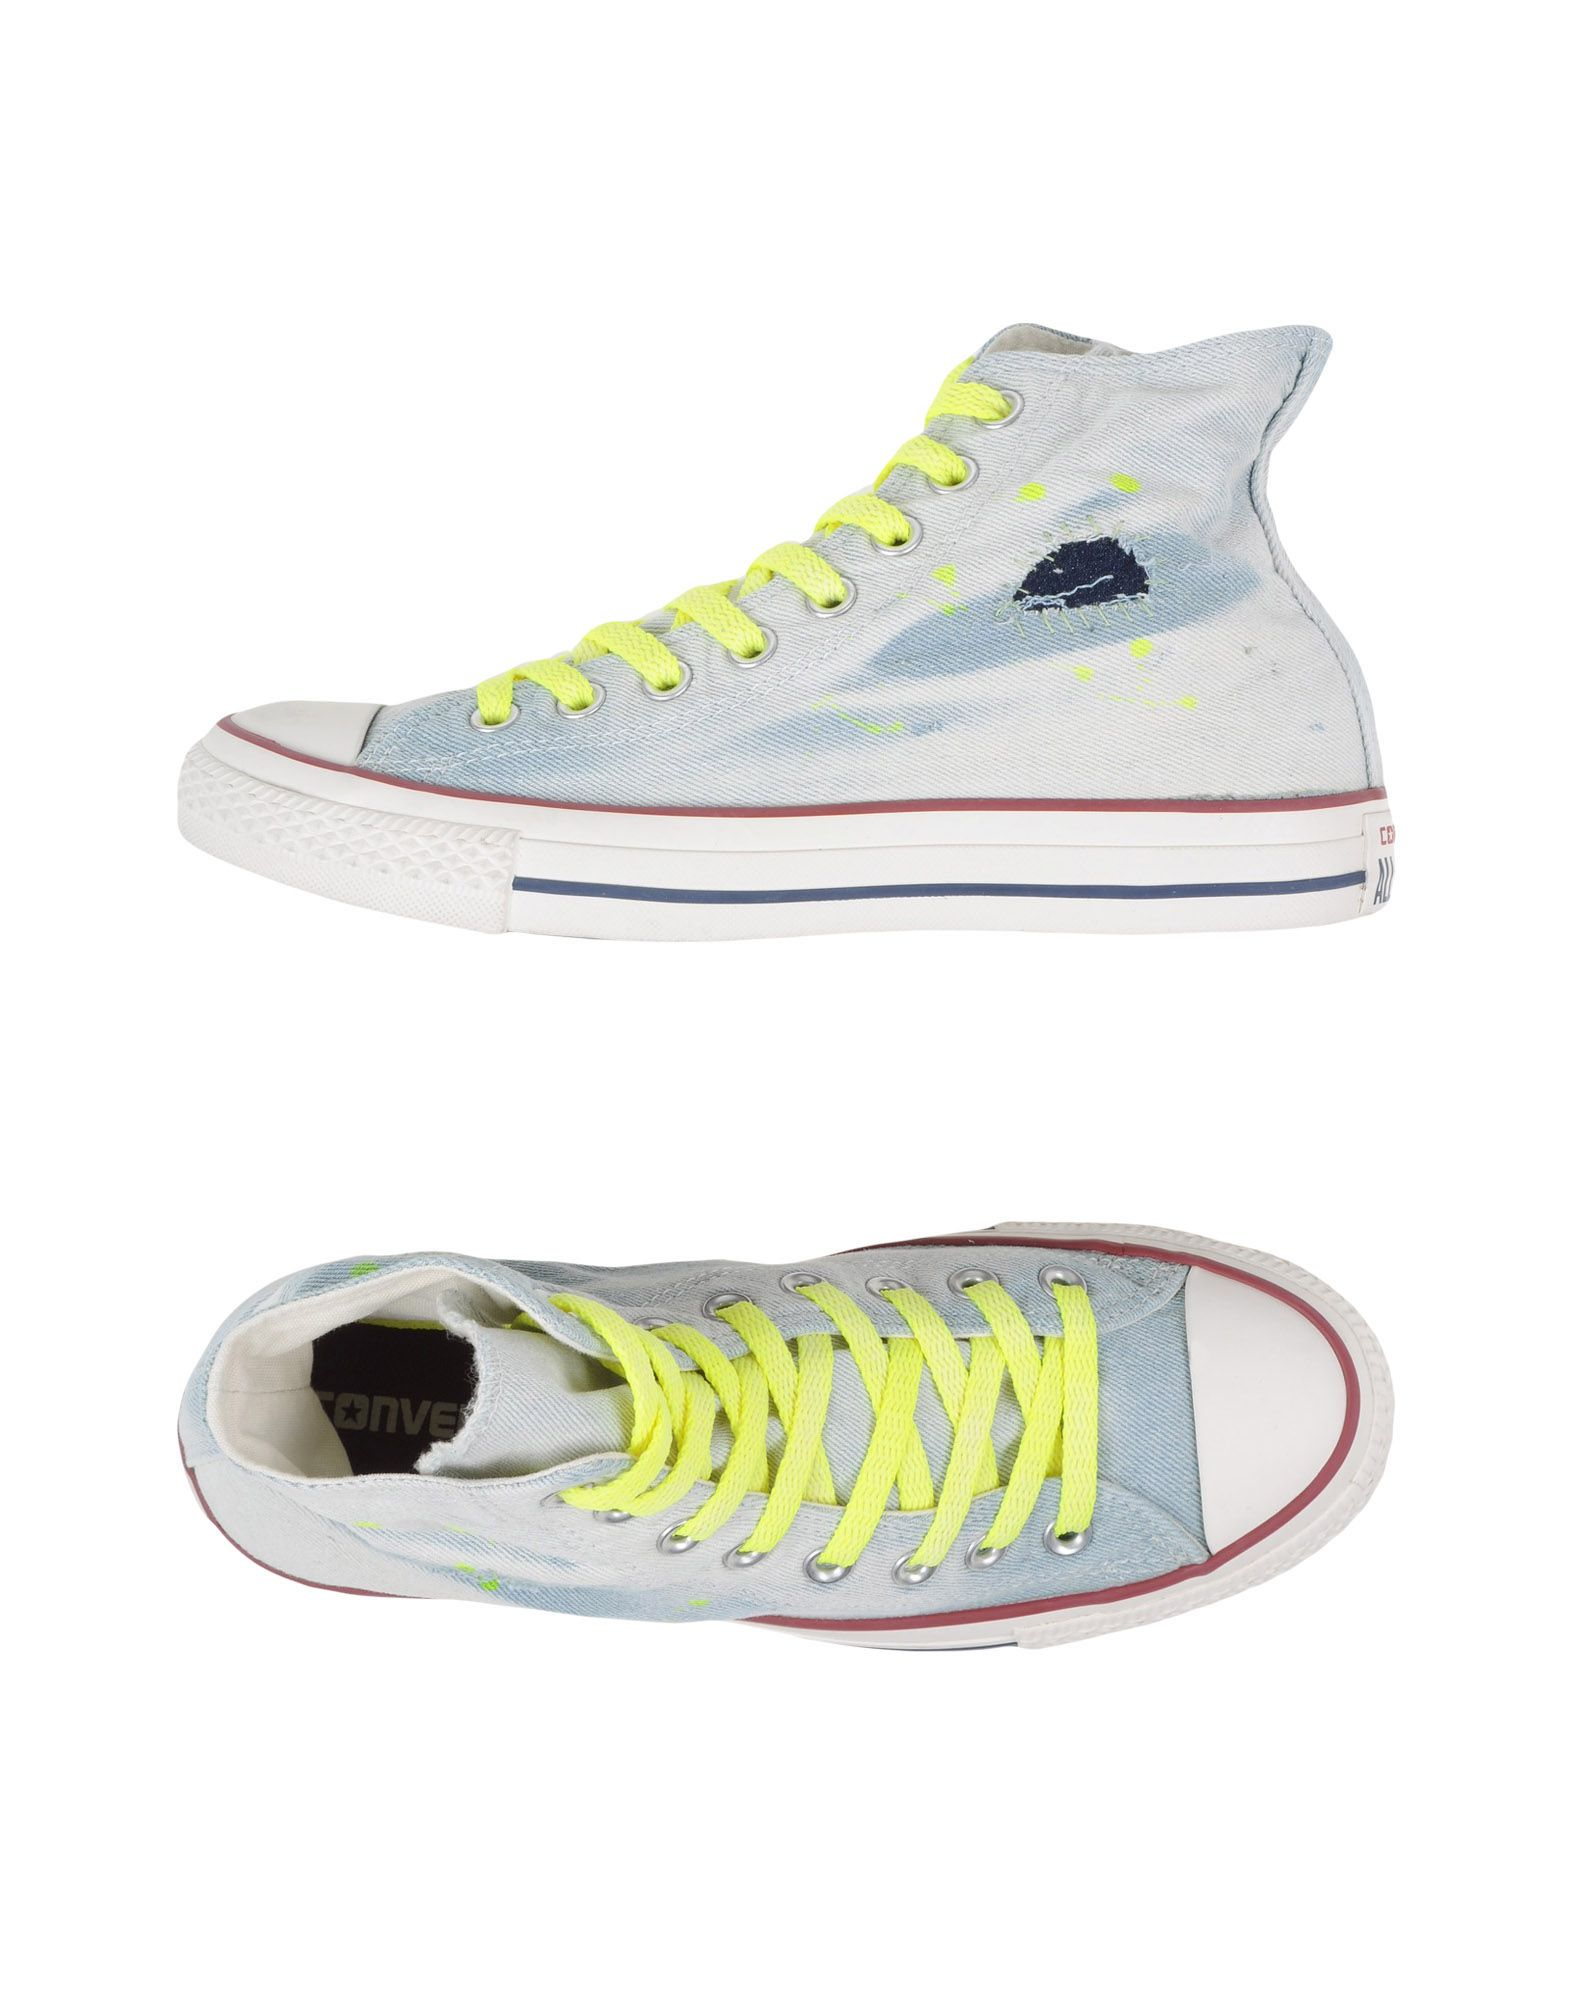 Sneakers Converse Limited Edition All Star Hi Denim Ltd - Femme - Sneakers Converse Limited Edition sur